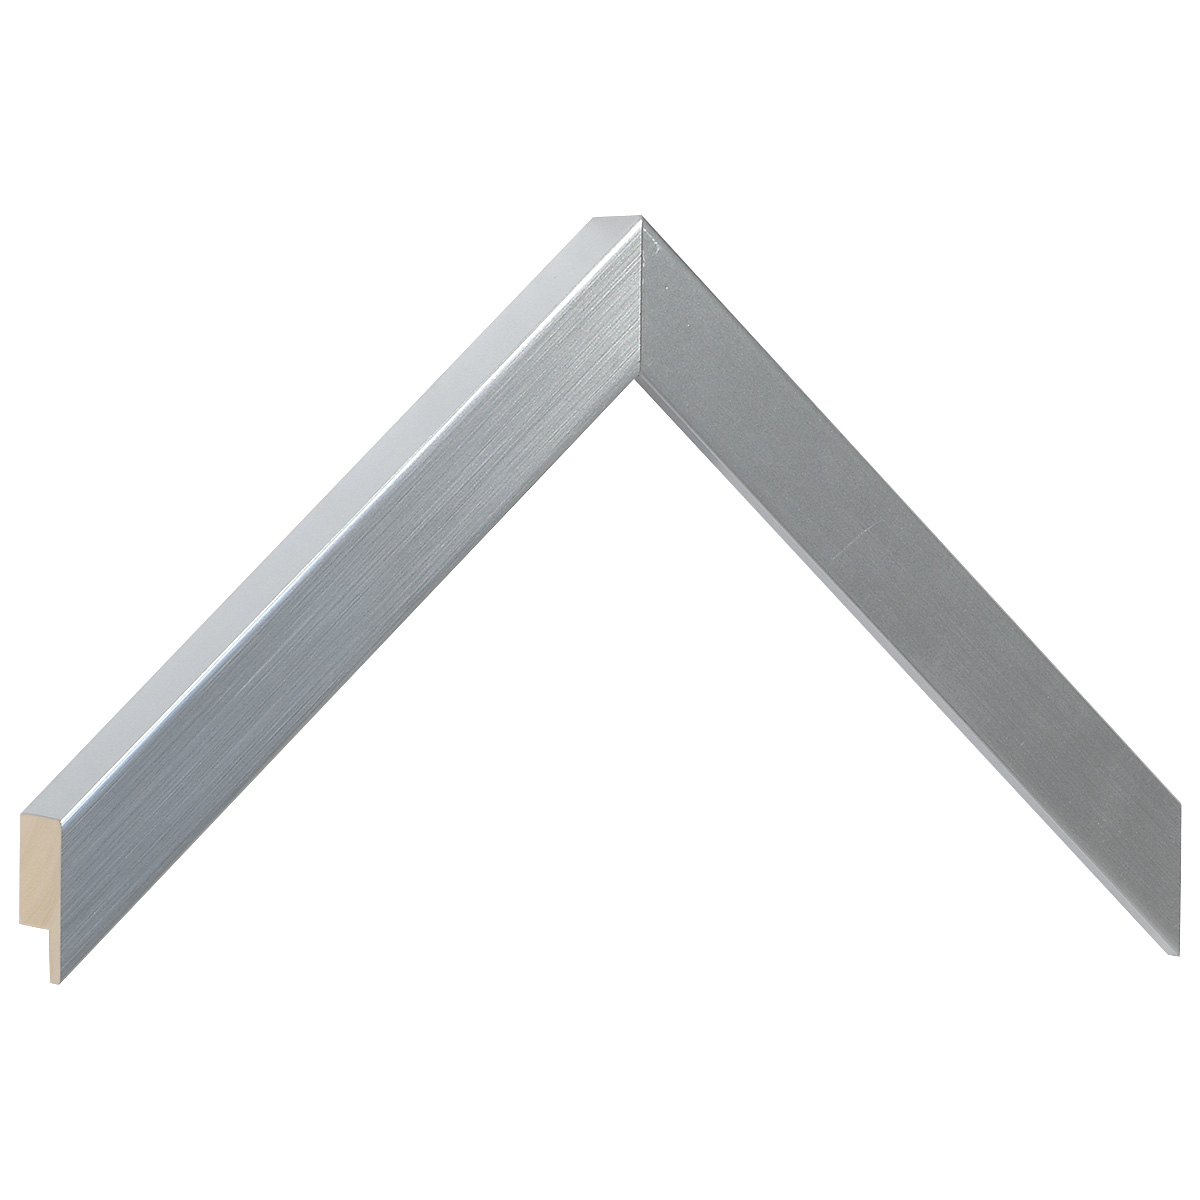 Moulding ayous, width 20mm height 25 - Silver